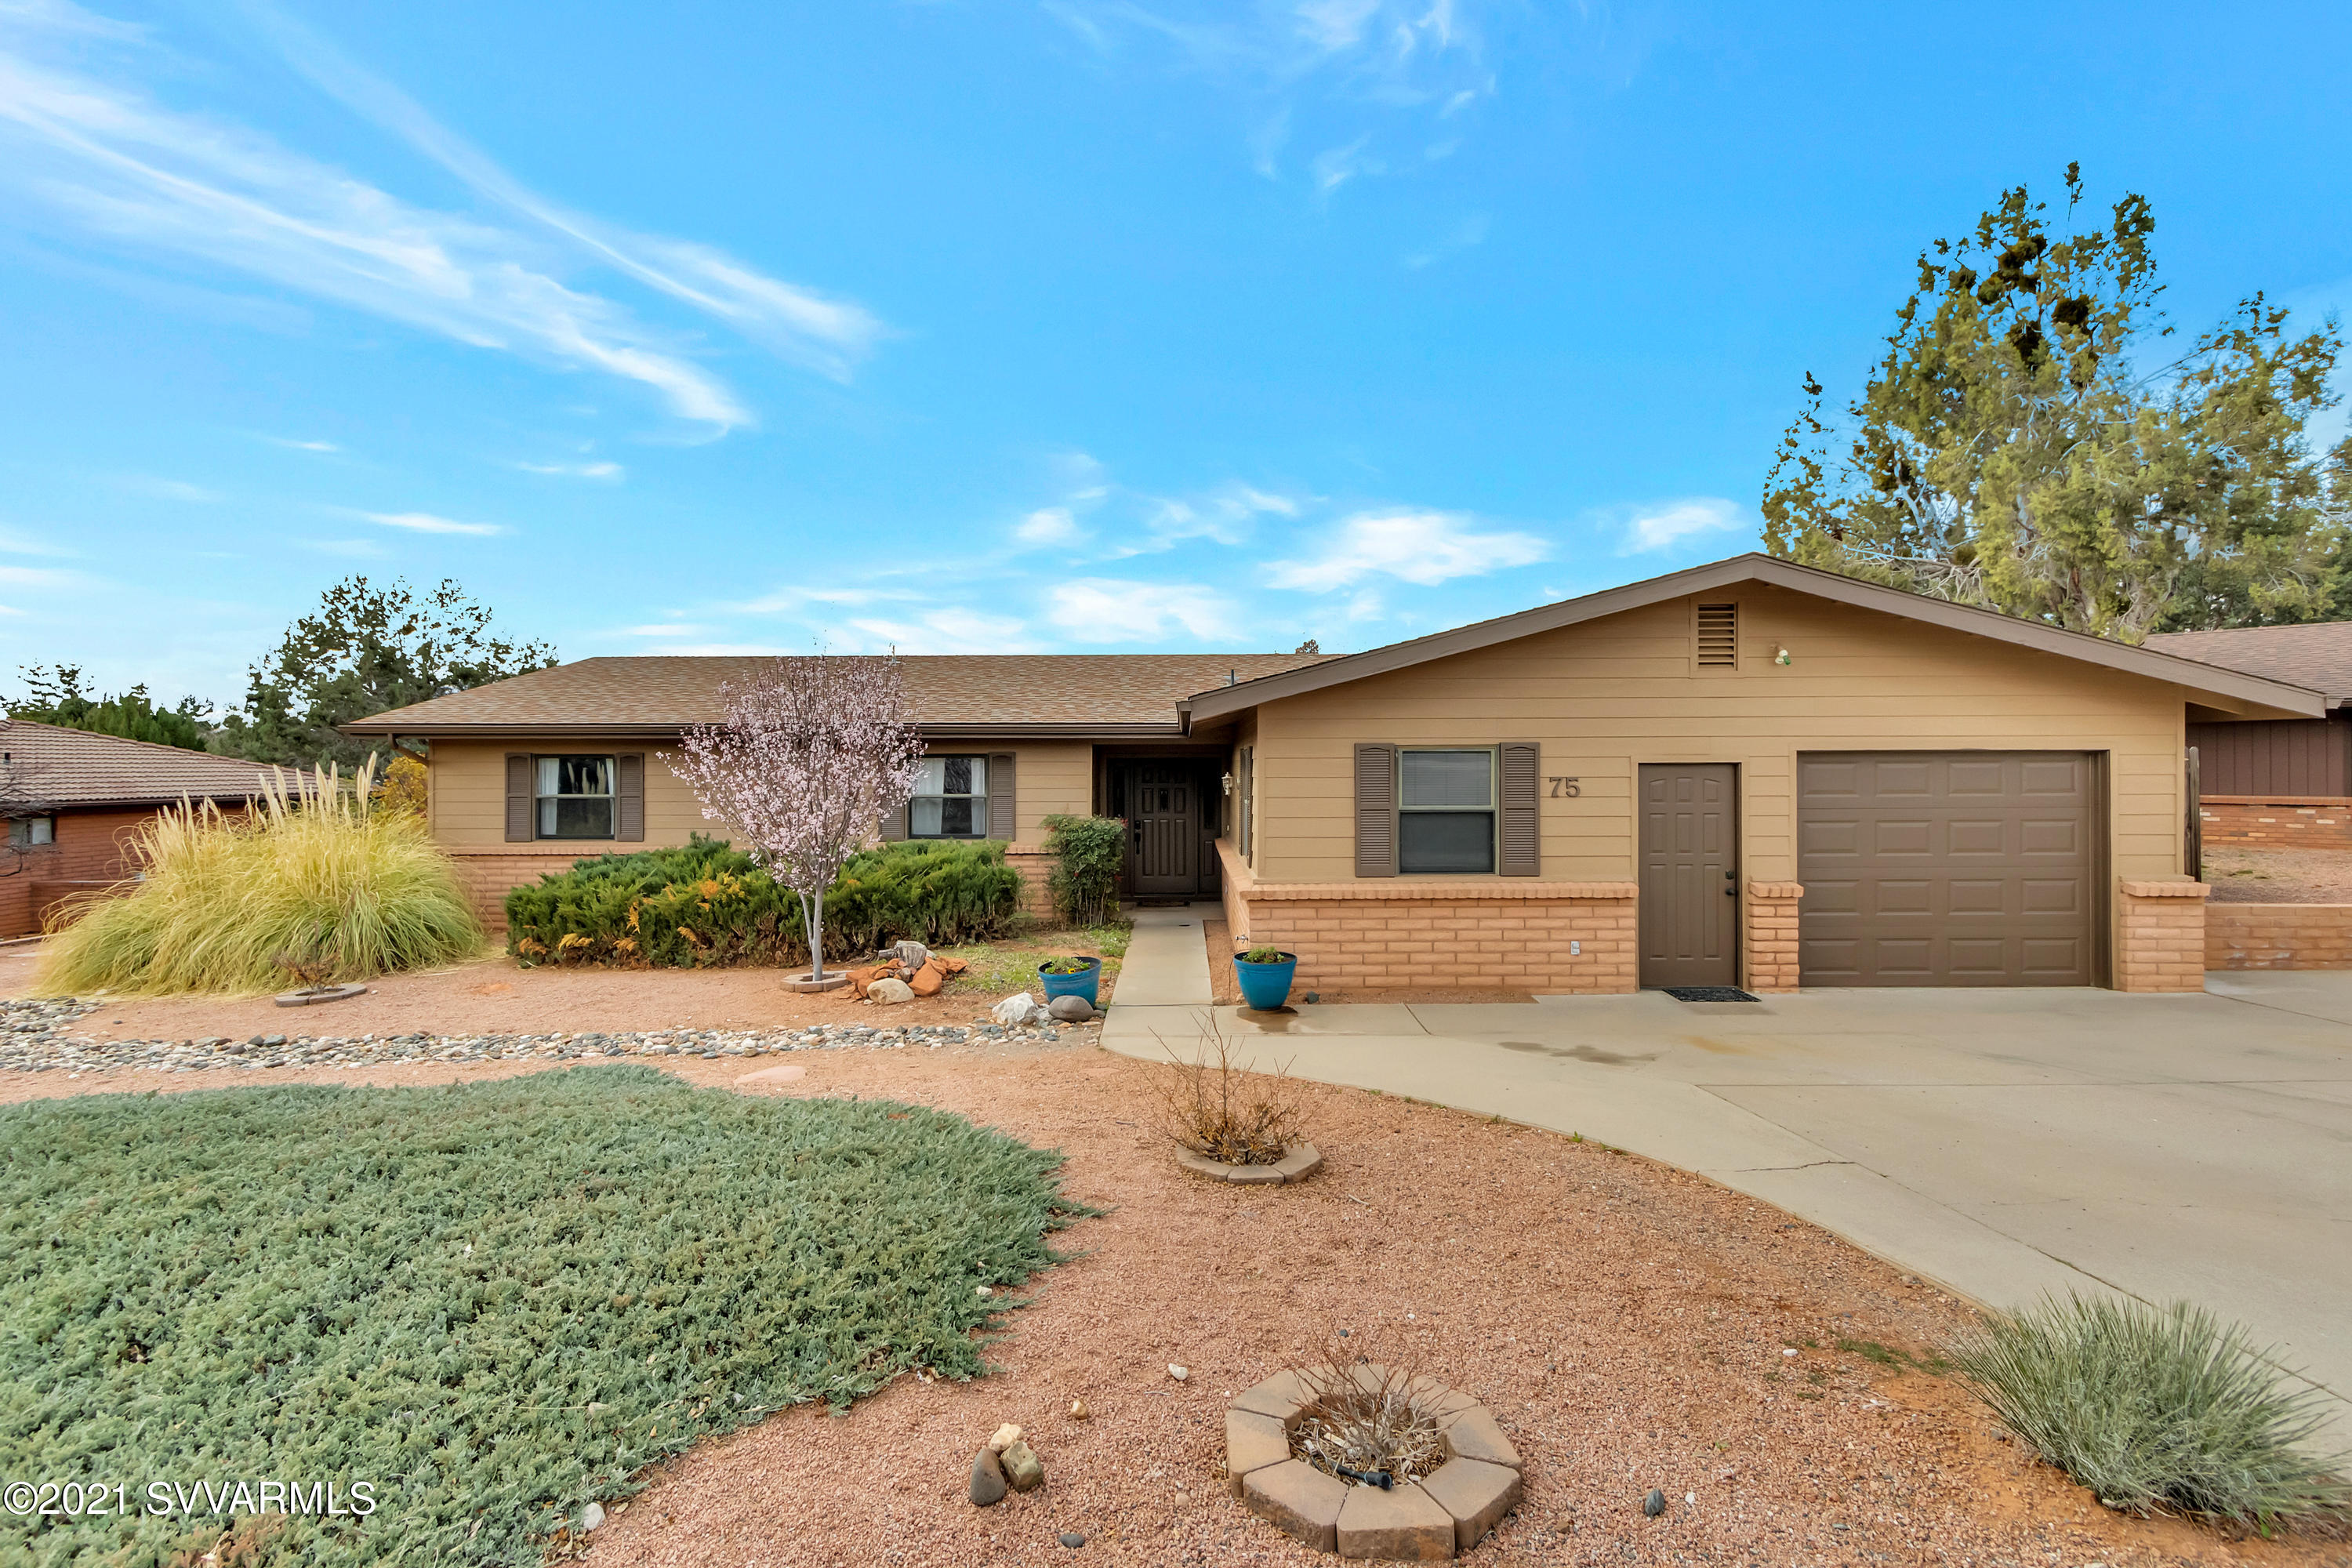 75 Broken Lance Way Sedona, AZ 86351